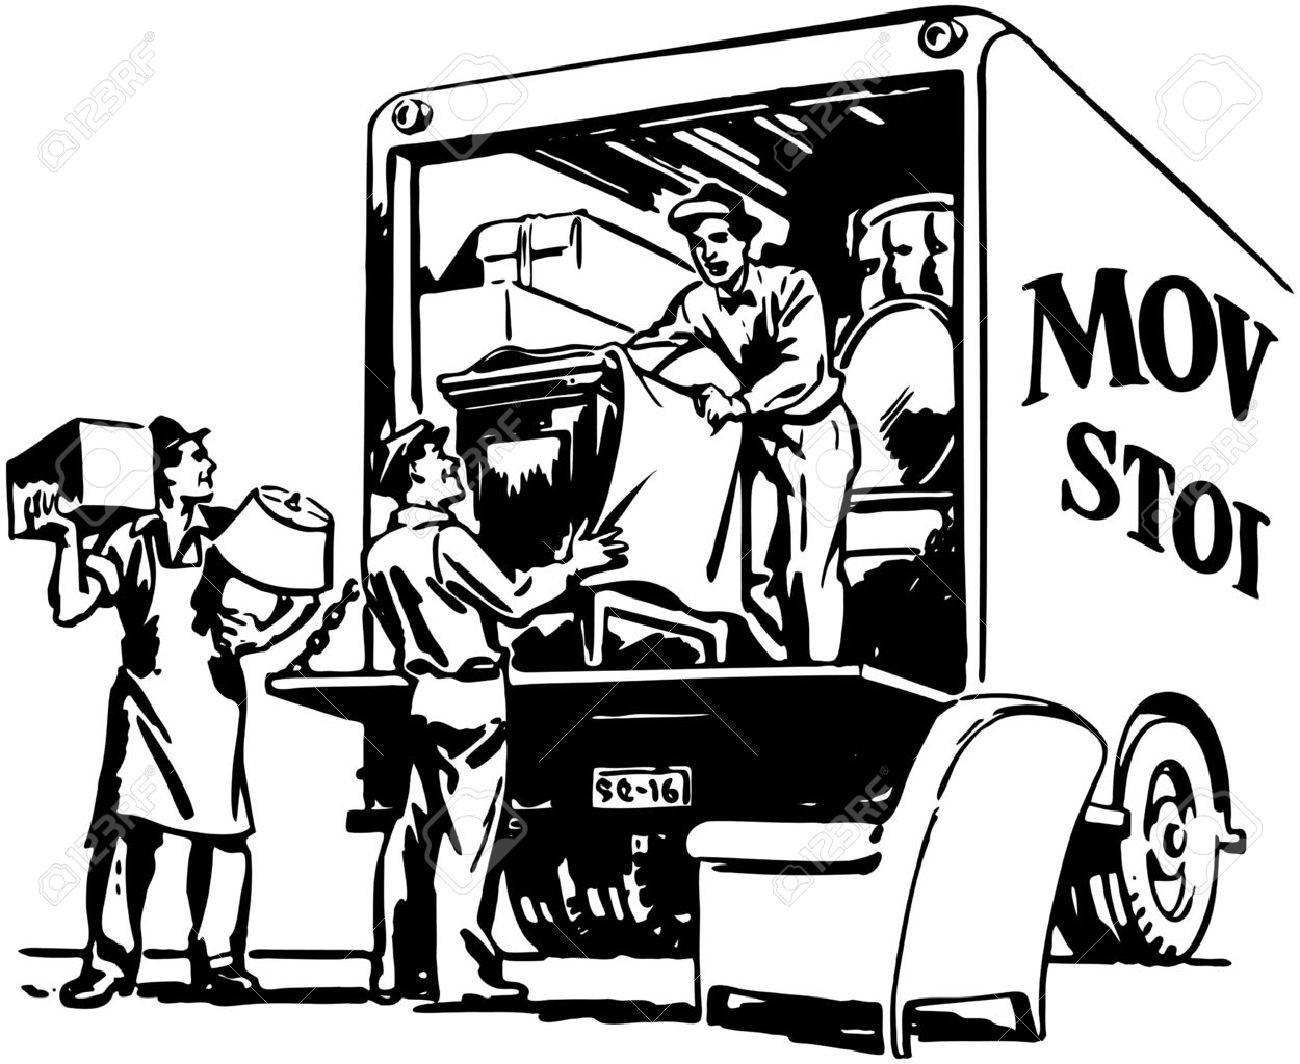 packing moving van royalty free cliparts vectors and stock rh 123rf com moving van clipart moving van clip art free